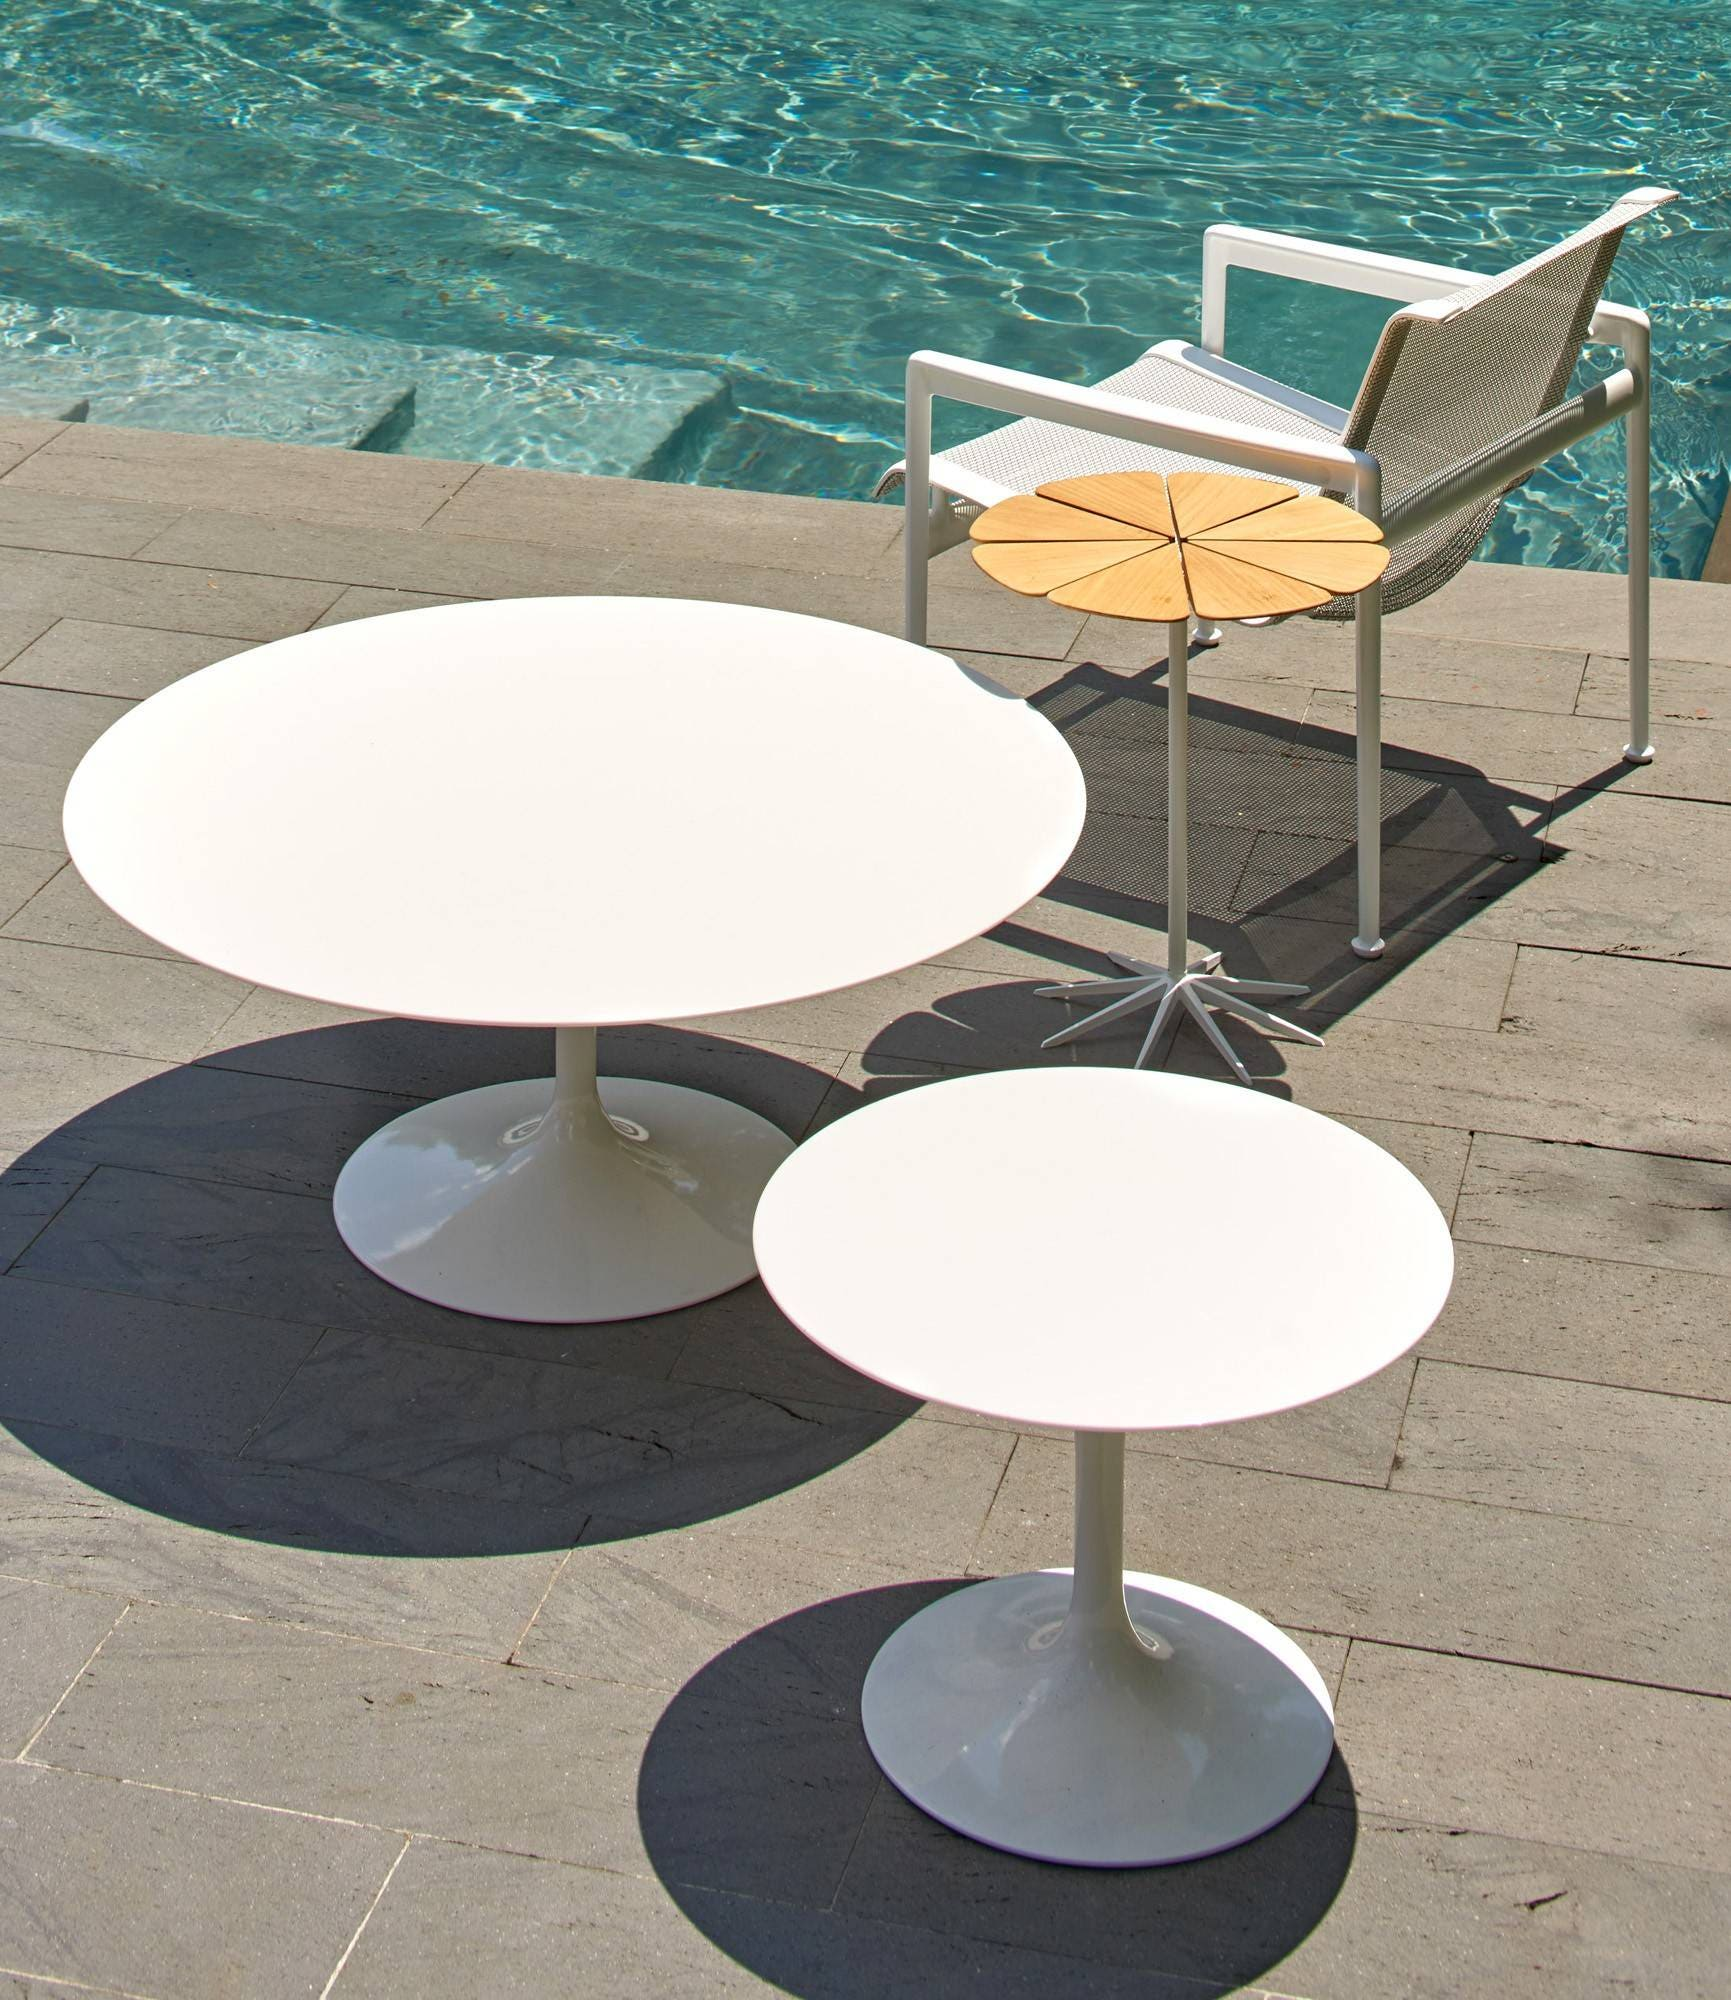 Round Coffee Table, Outdoor